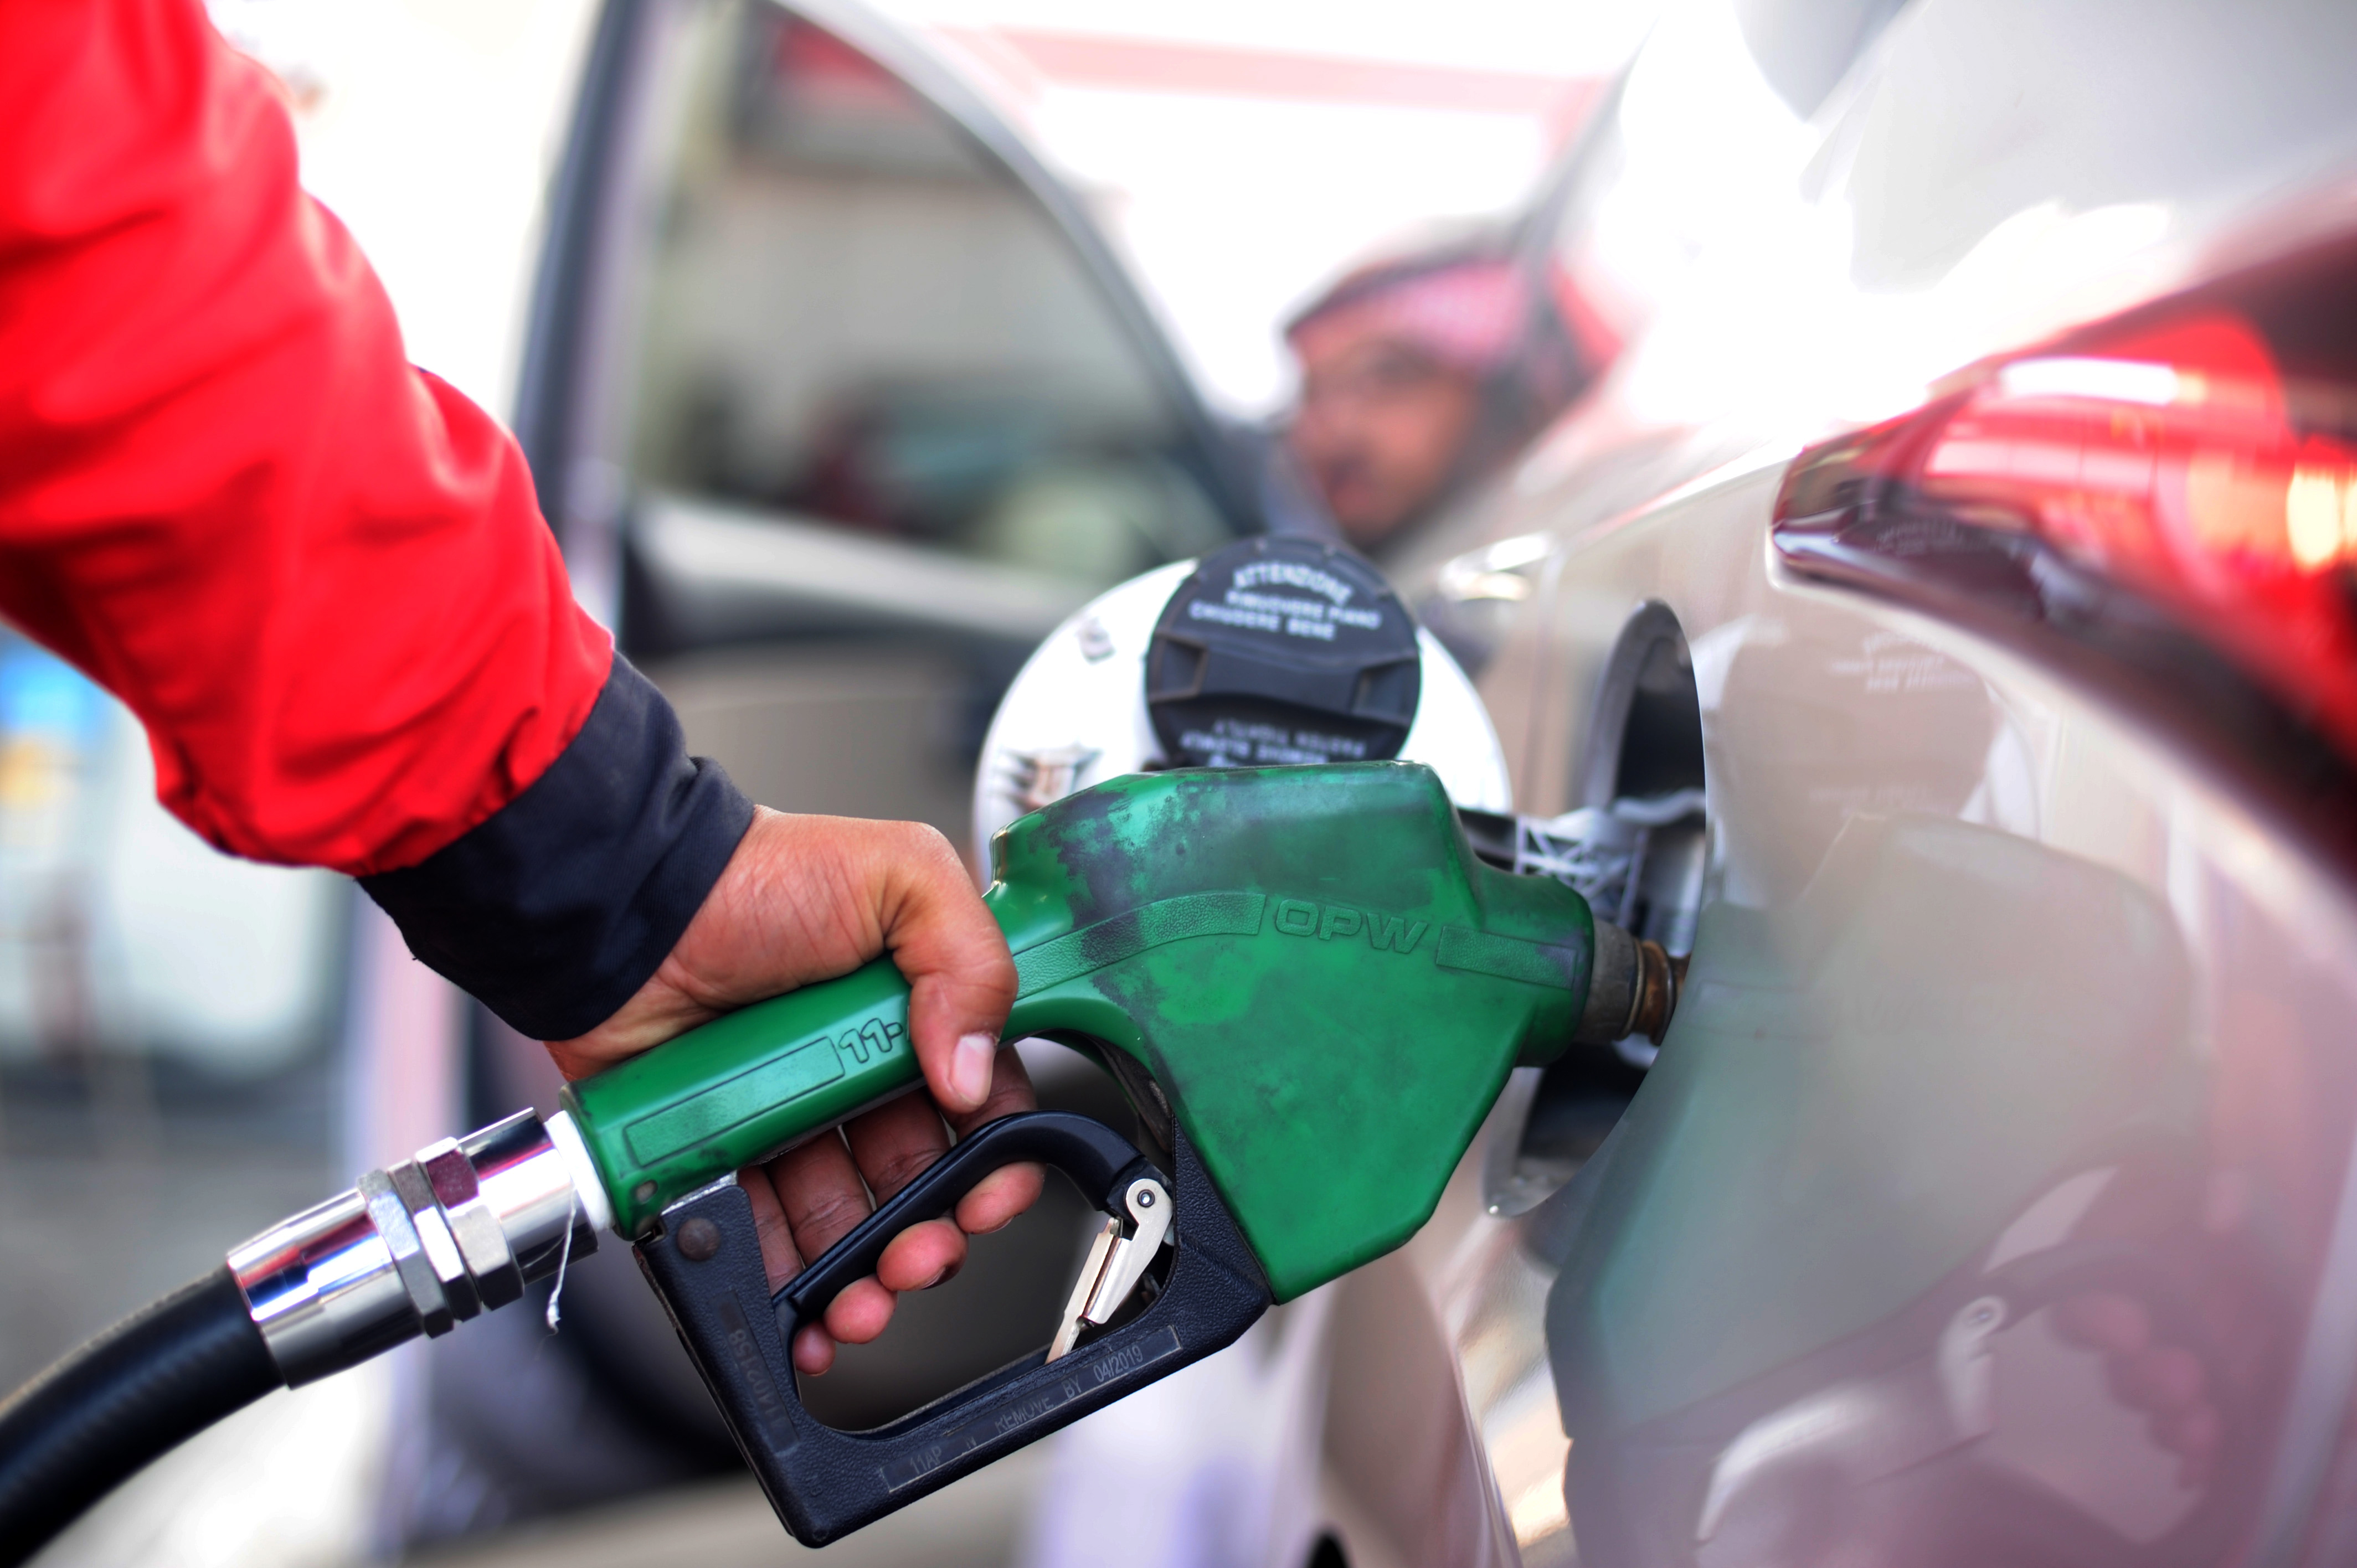 A Saudi employee fills the tank of his car with petrol at a station on December 28, 2015 in the Red Sea city of Jeddah.